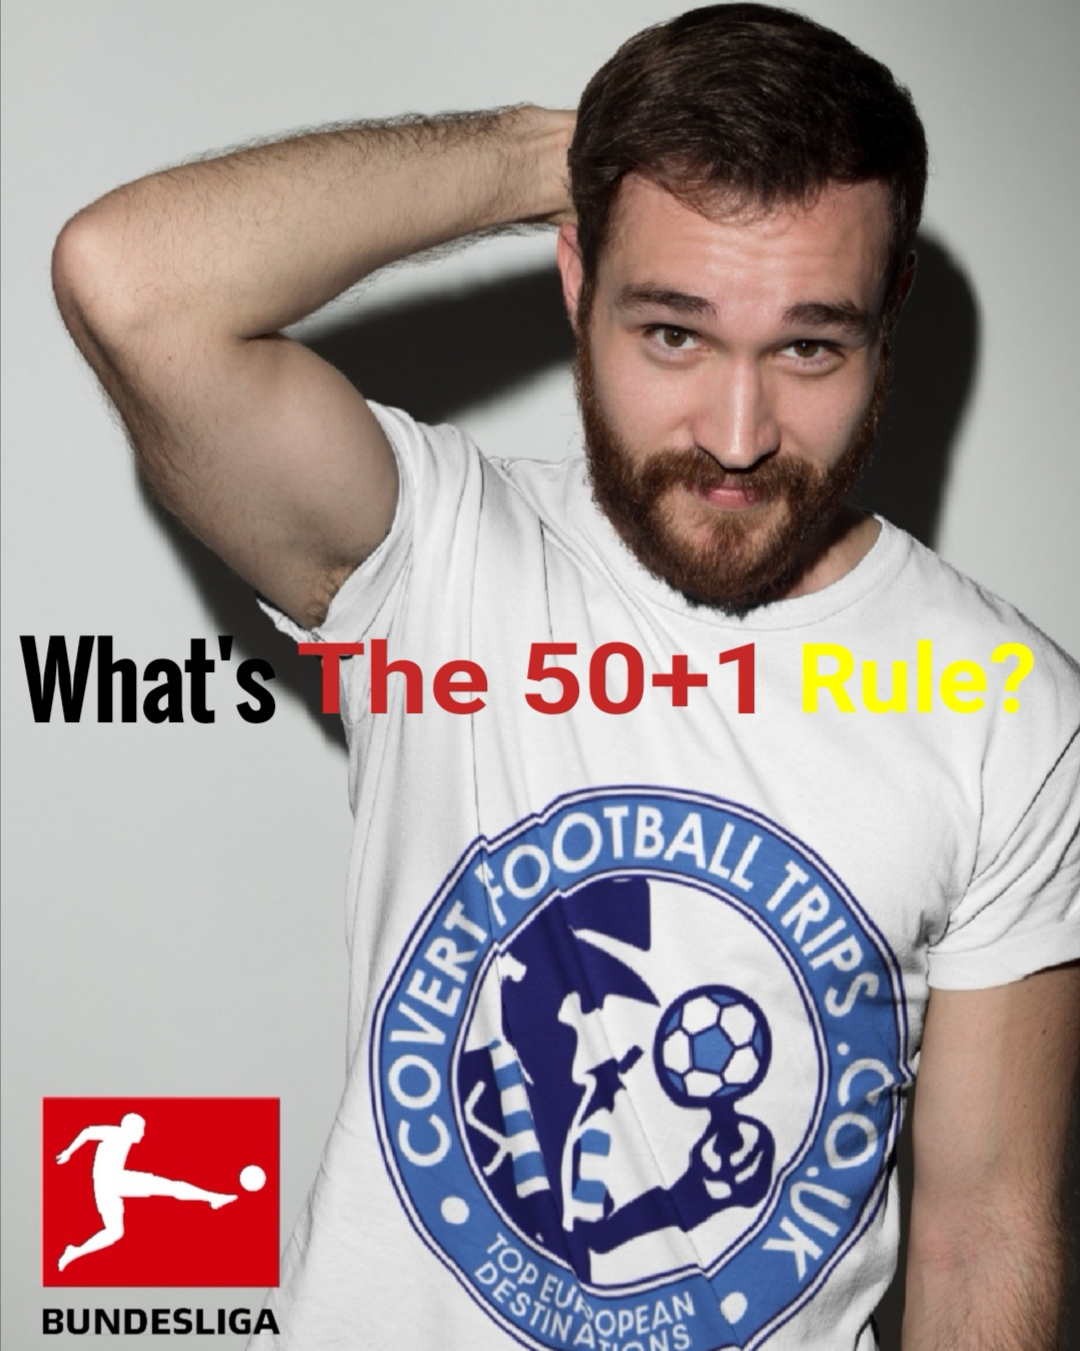 What is the 50+1 Rule?